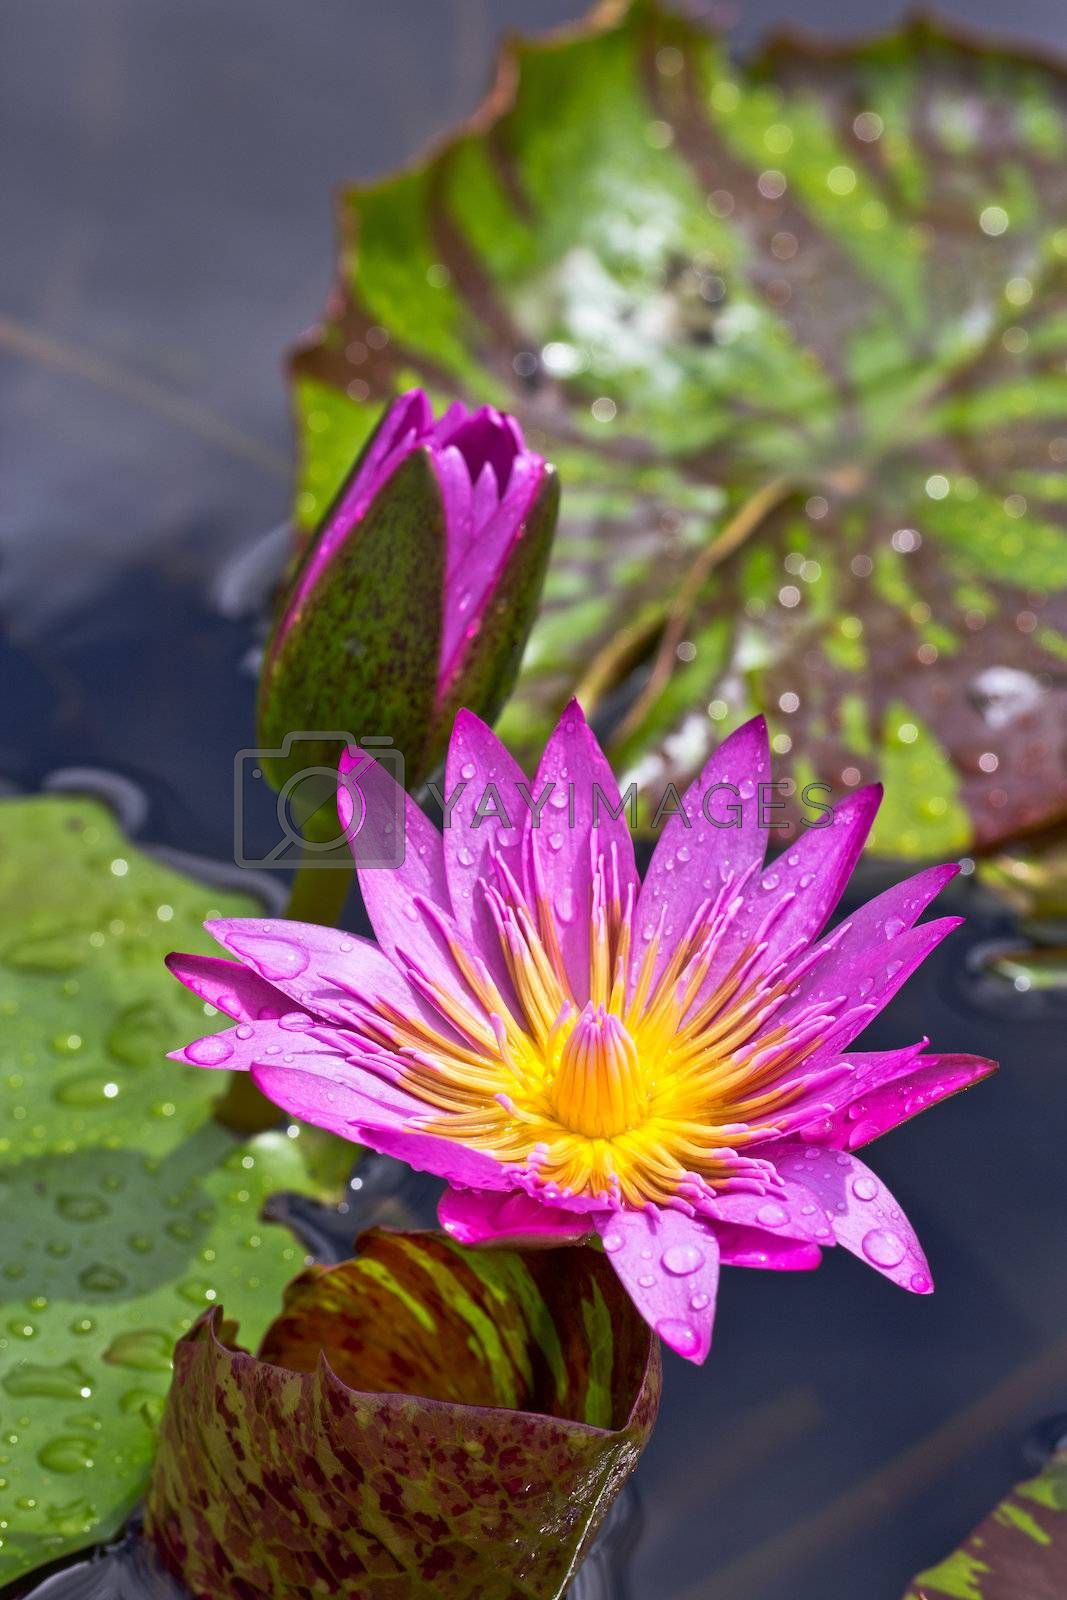 Blooming lotus in the basin after rained